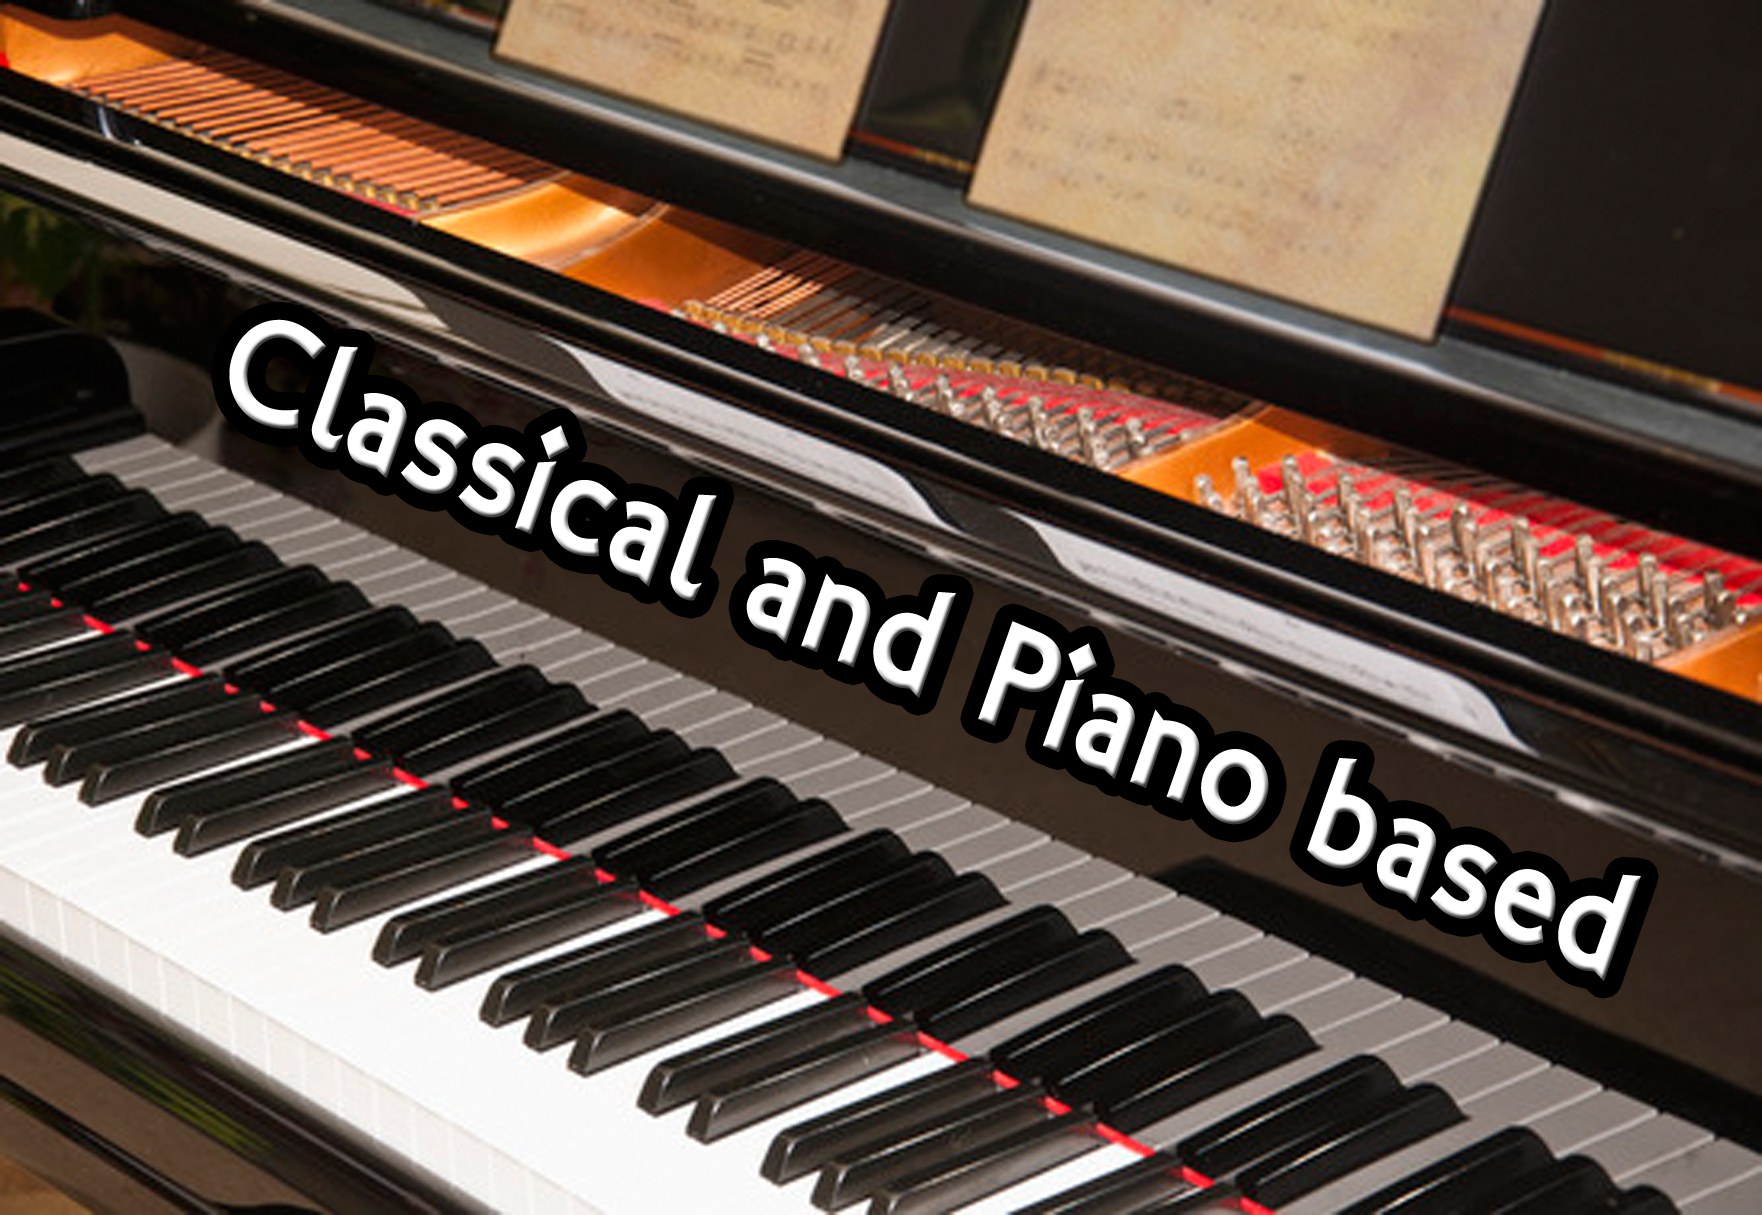 Classical and Piano based music